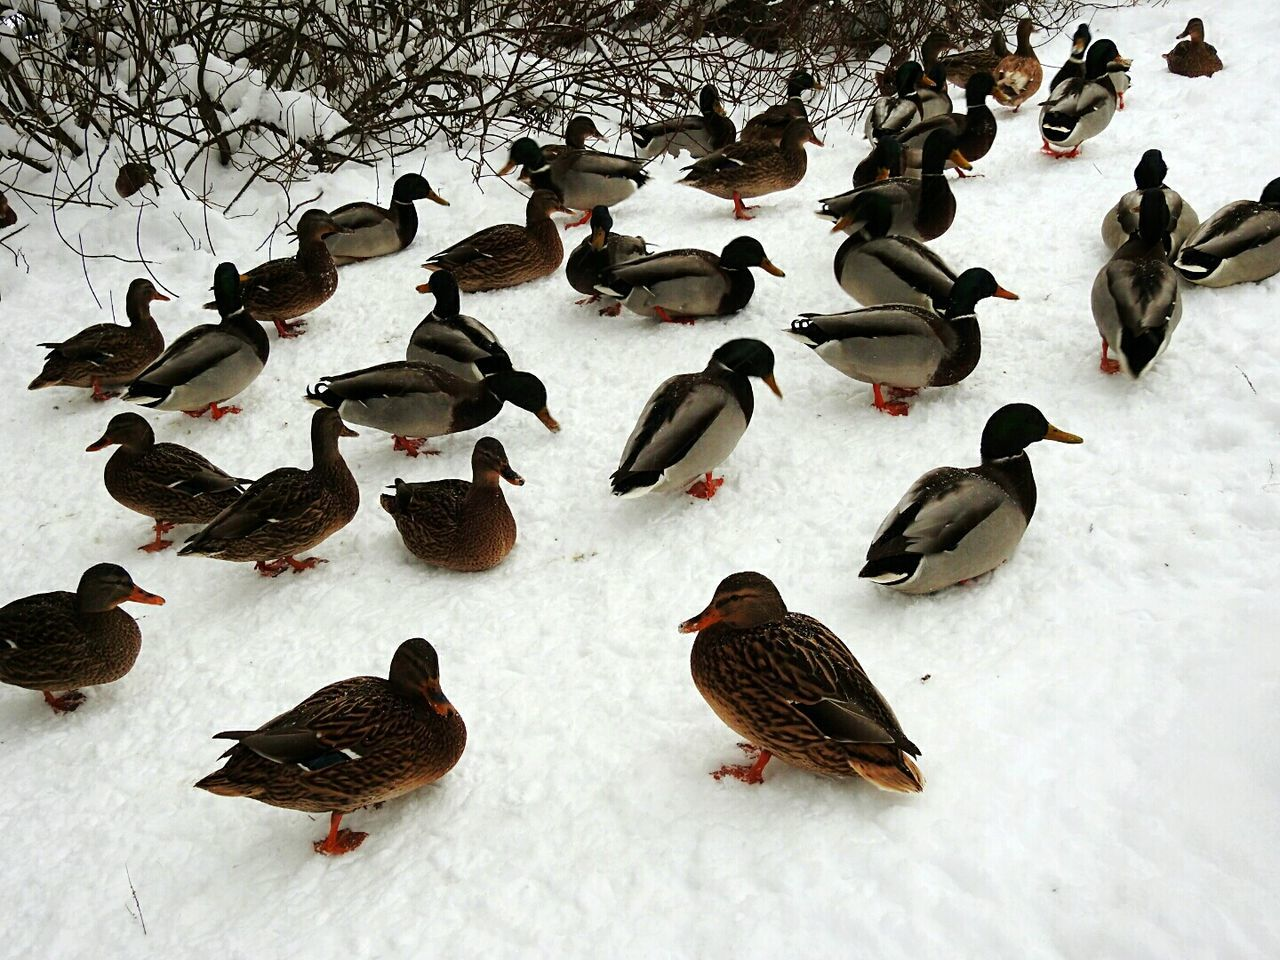 Ducks On Snow Large Group Of Animals Bird No People Day Park Elagin Island Winter Snow❄⛄ Colors Of Sankt-Peterburg Sankt-Petersburg Russia Exploring Style